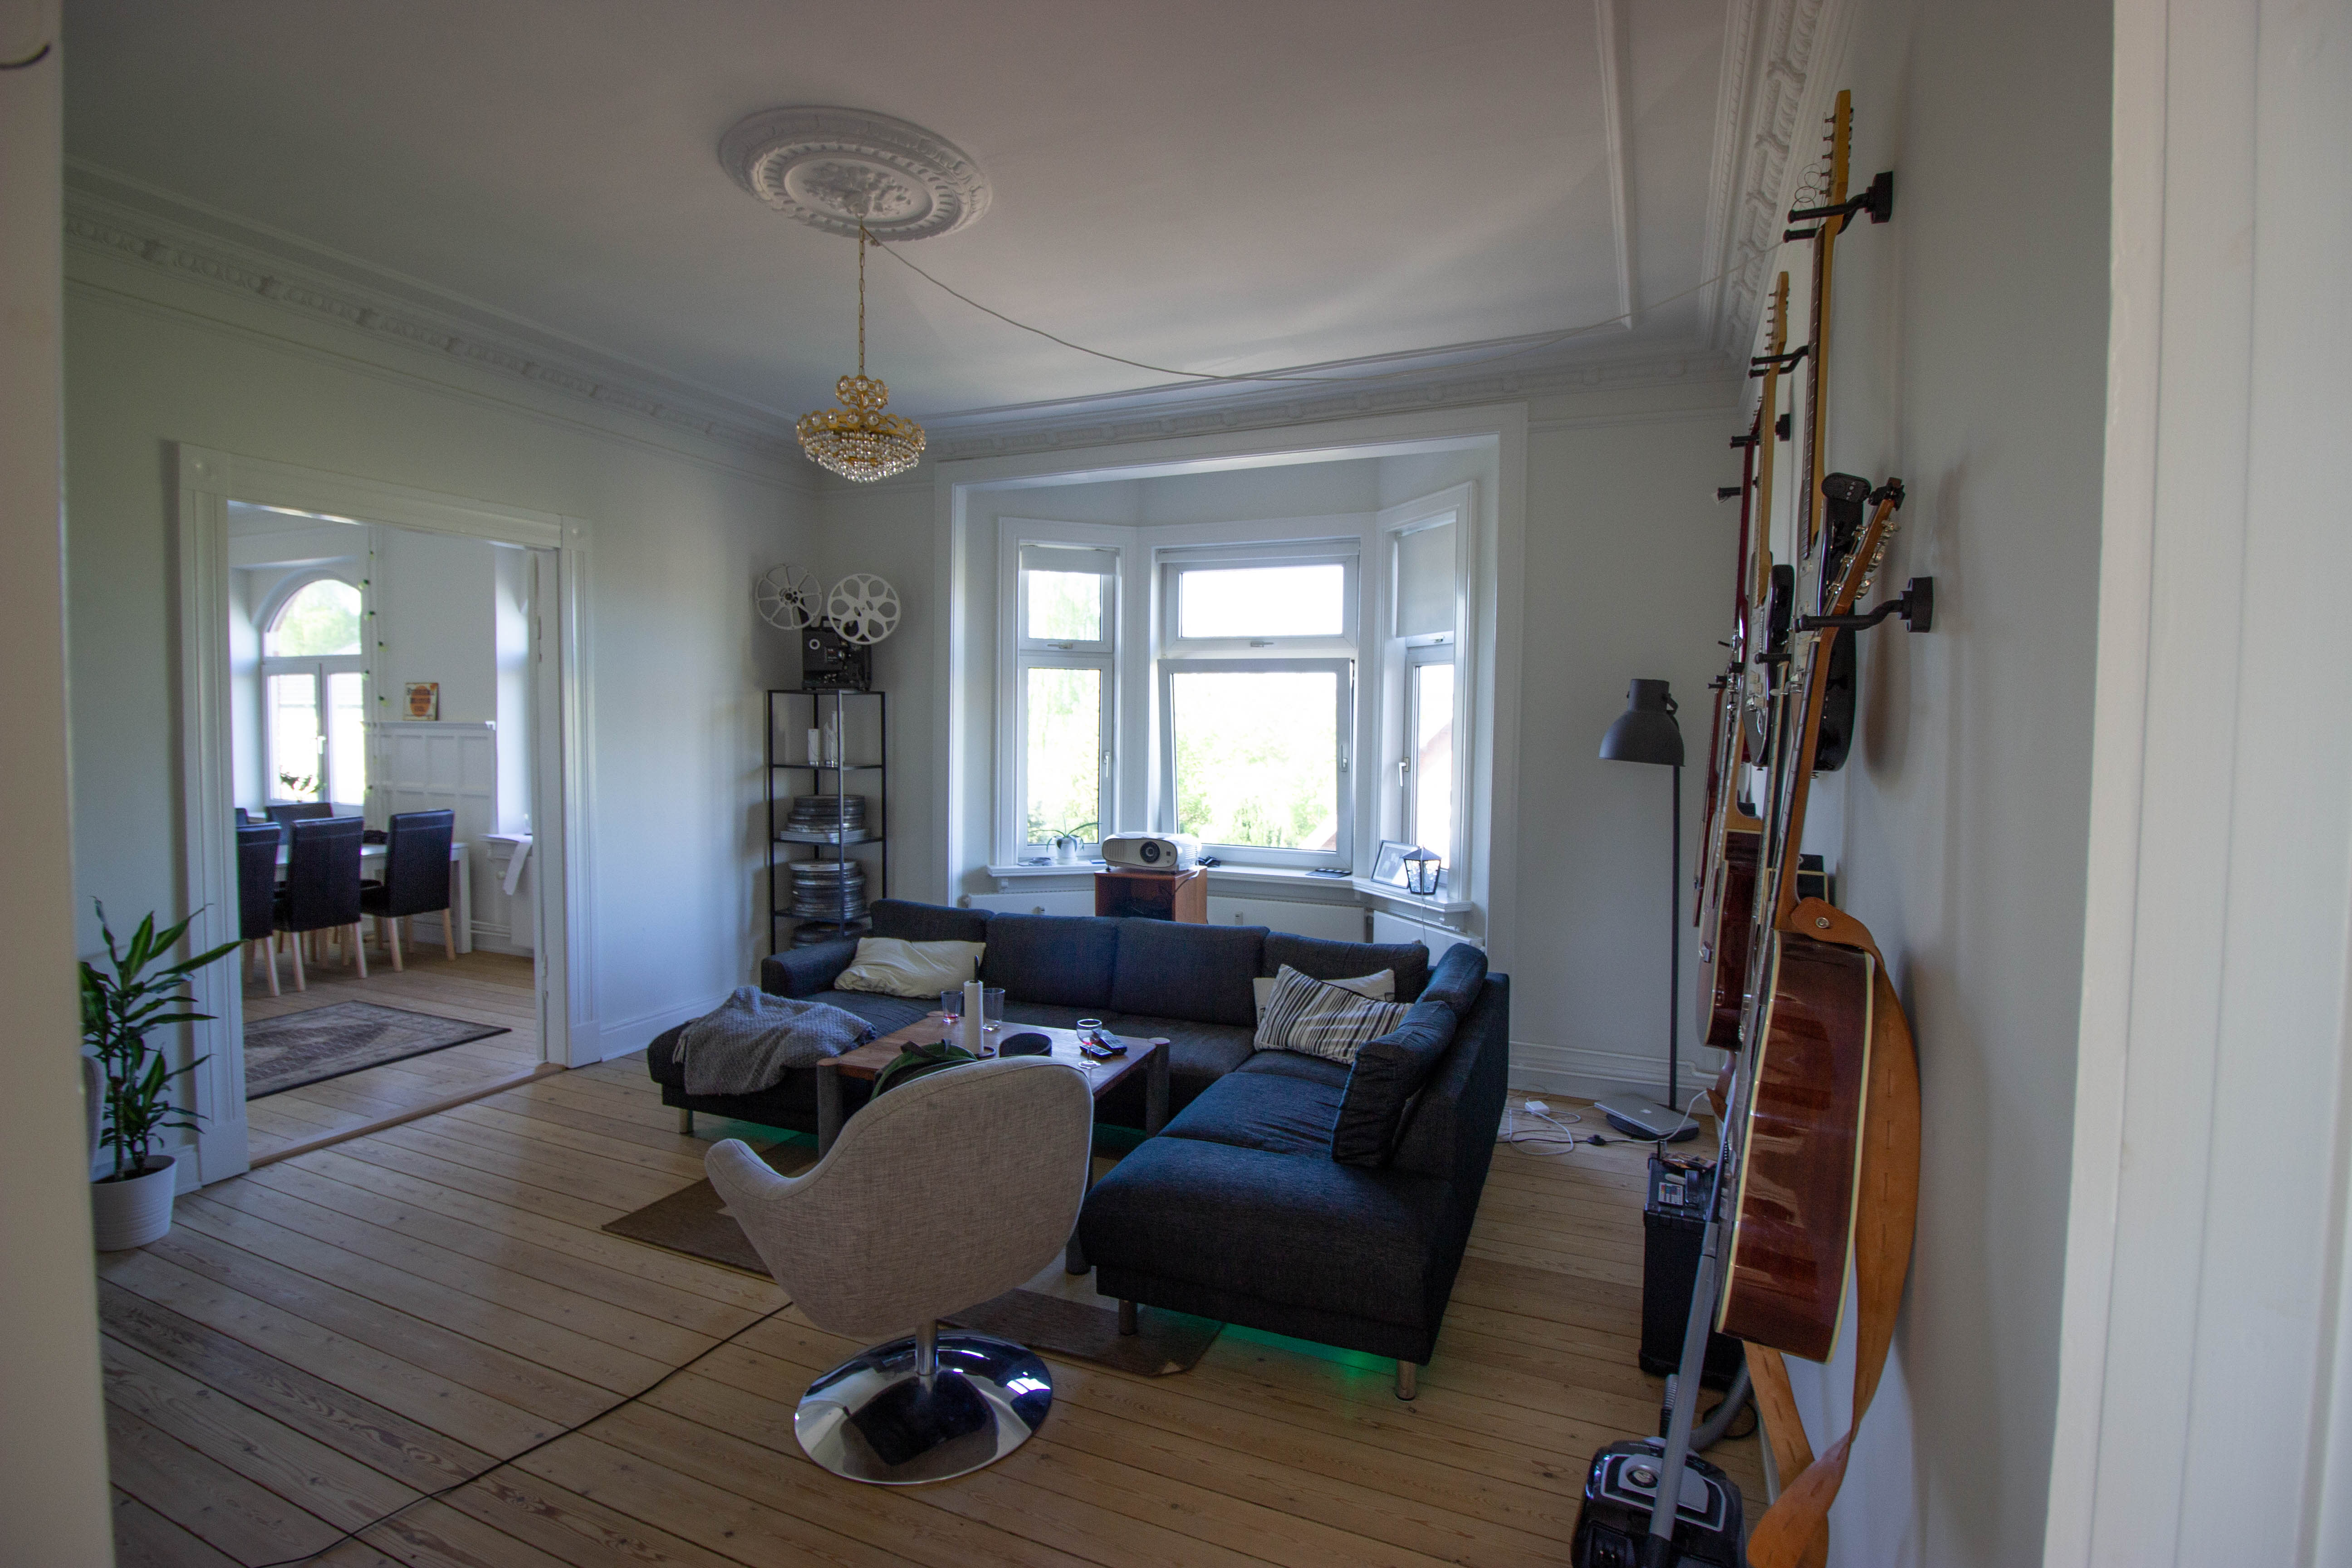 Creative living room in centrally located master bedroom looking for a roommate